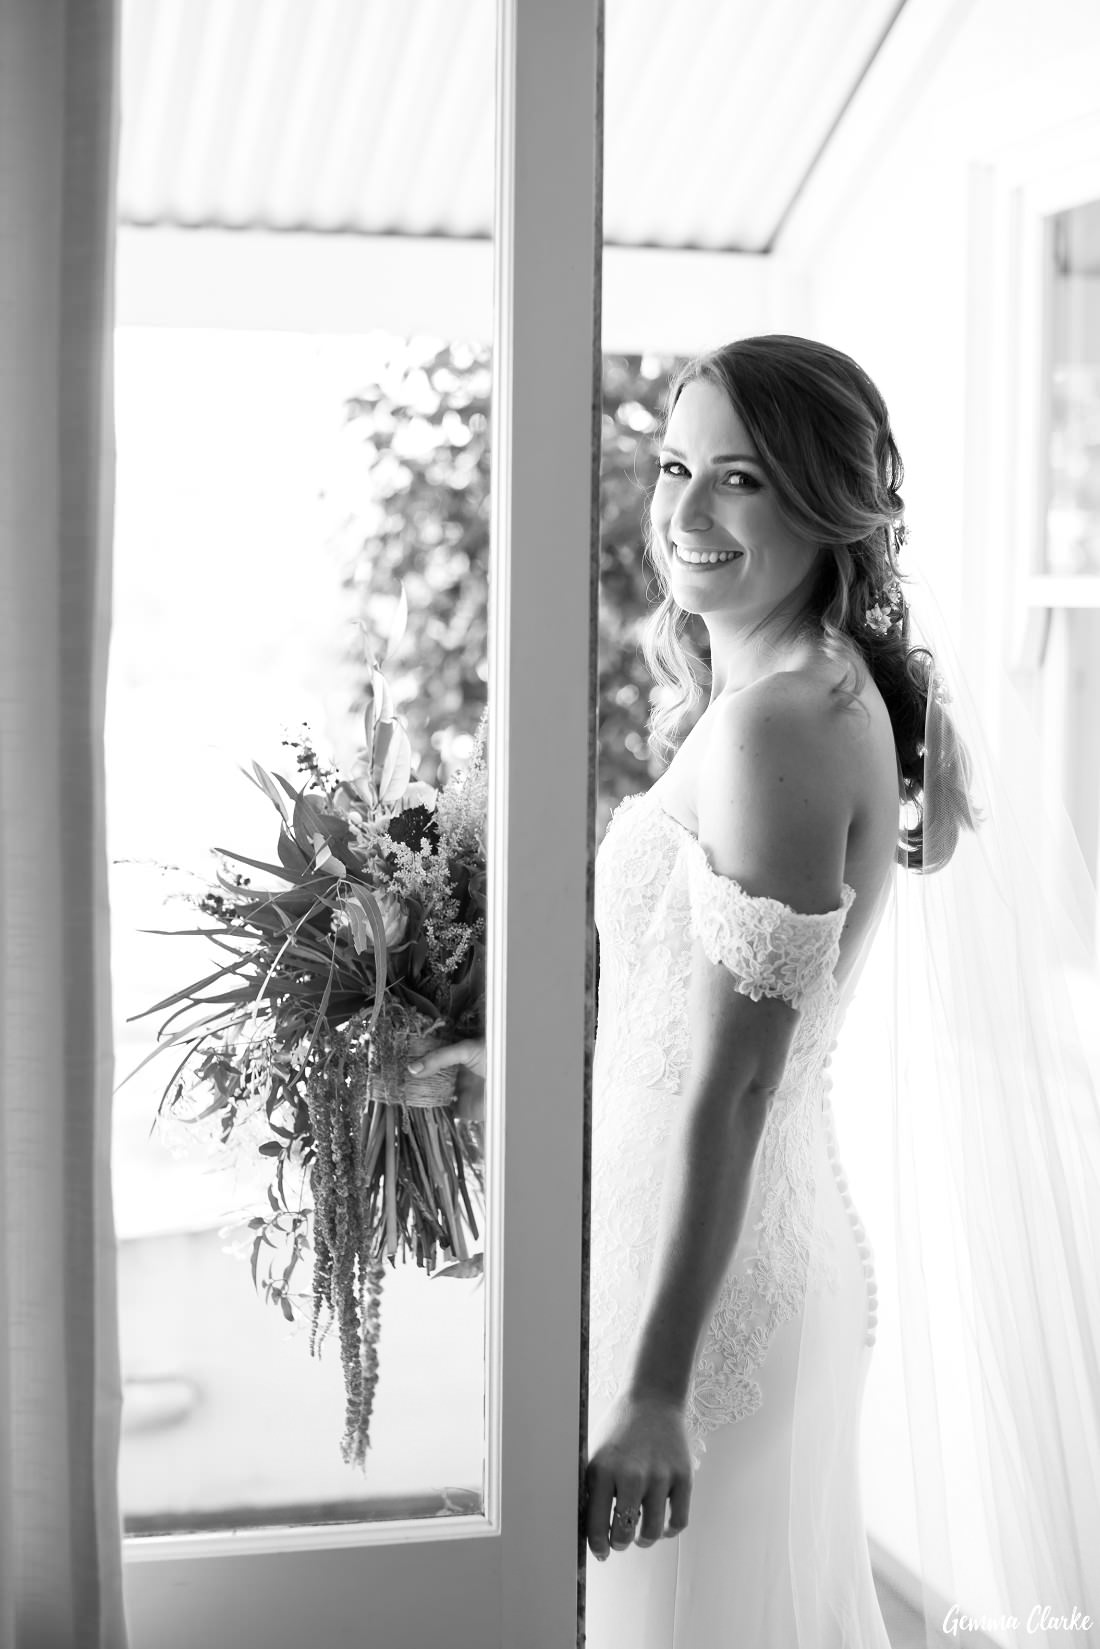 Stunning bridal portrait as she walks outside onto the verandah with her veil trailing behind her at this Willow Farm Wedding